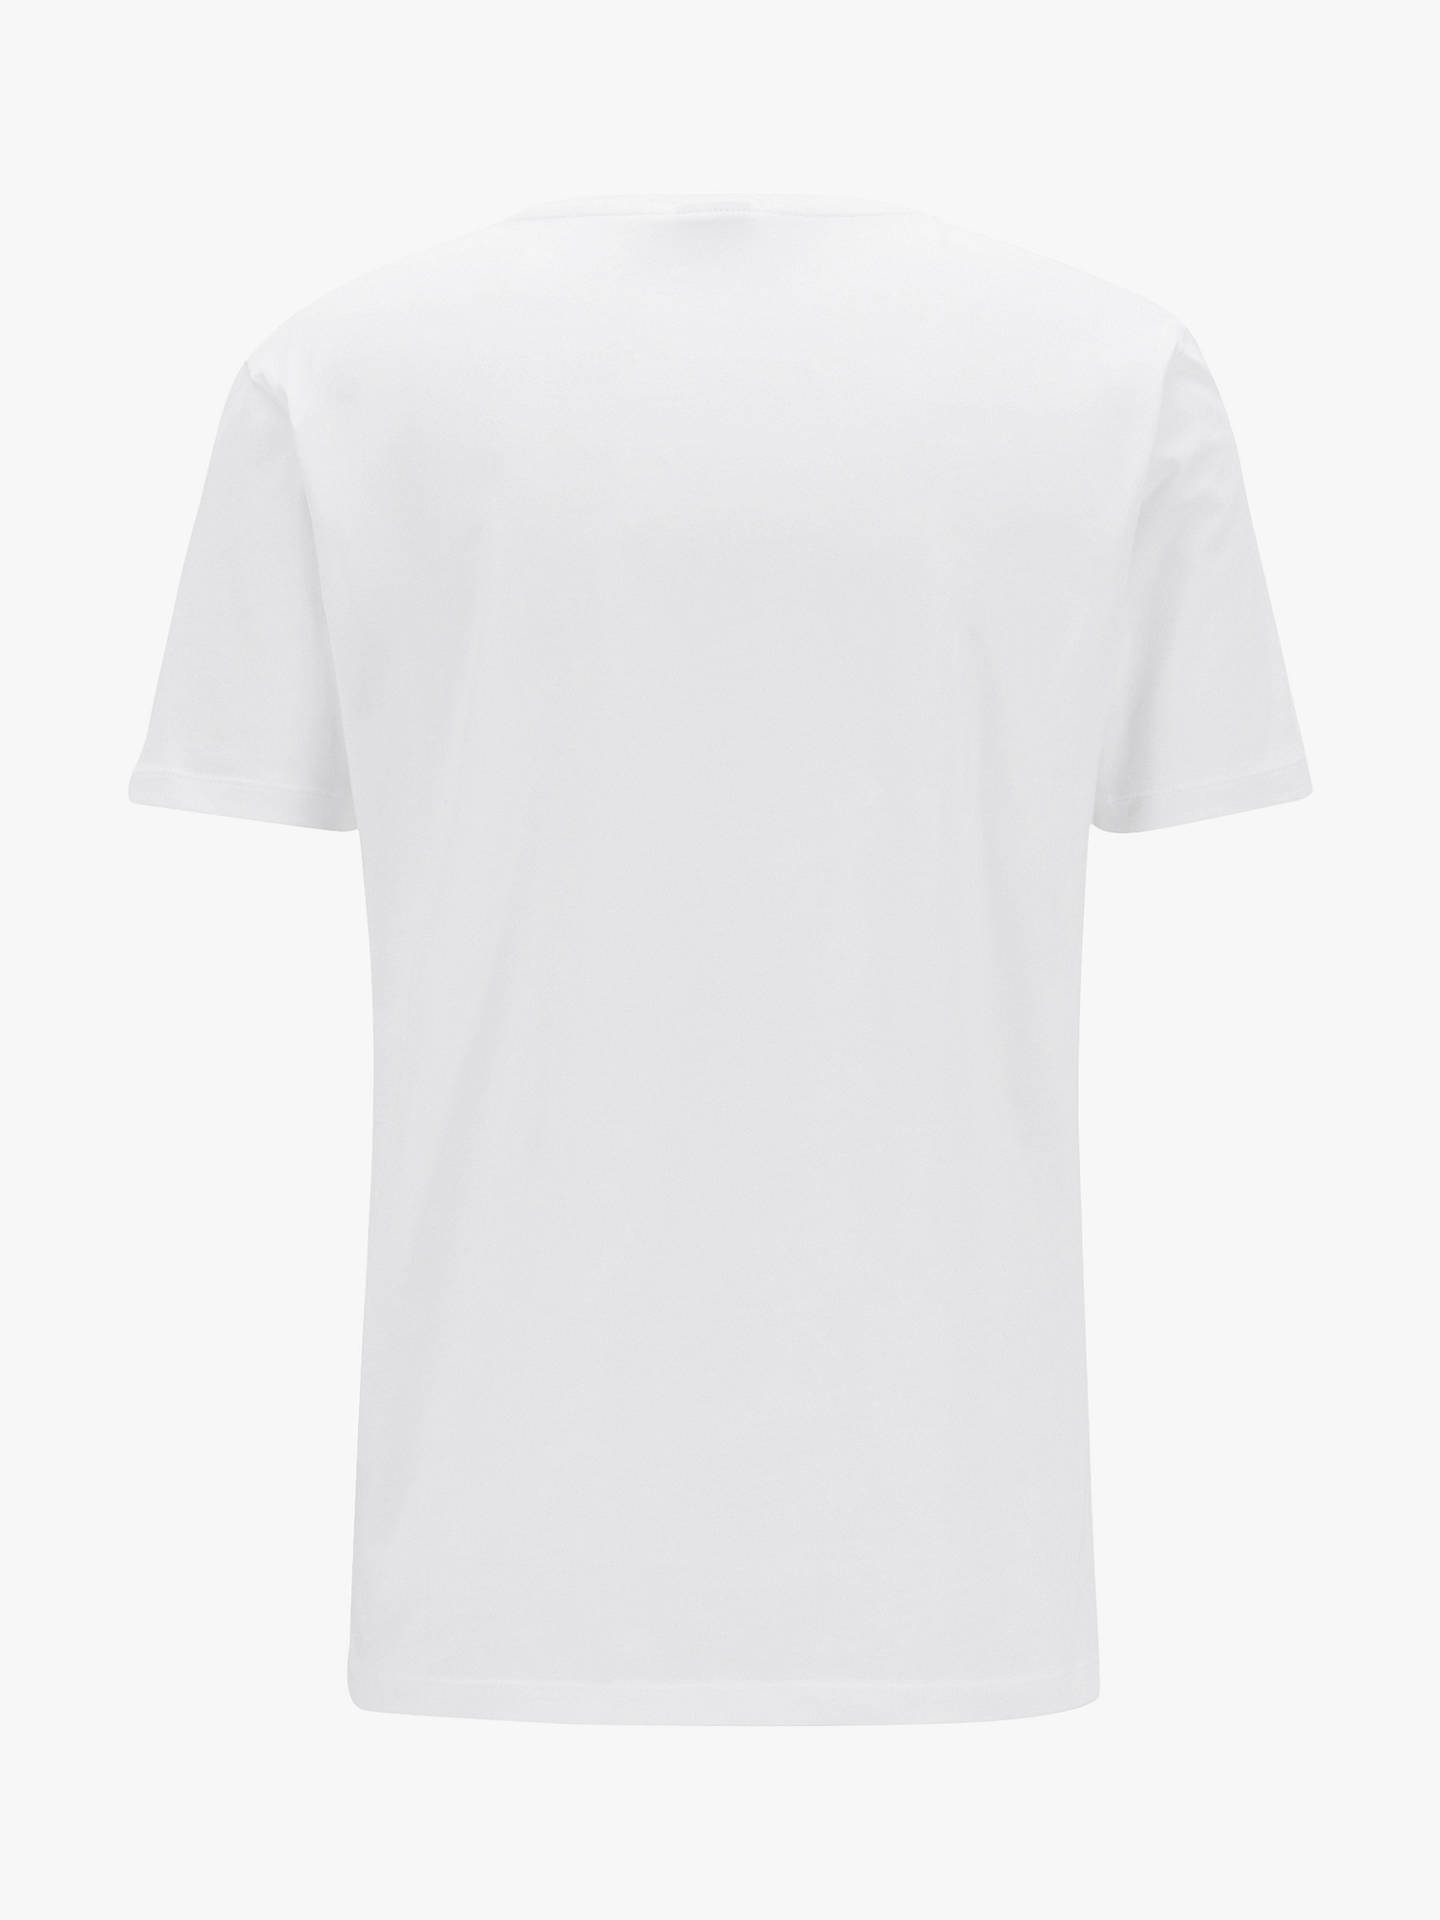 BuyBOSS Lecco Short Sleeve Cotton T-Shirt, White, XXL Online at johnlewis.com